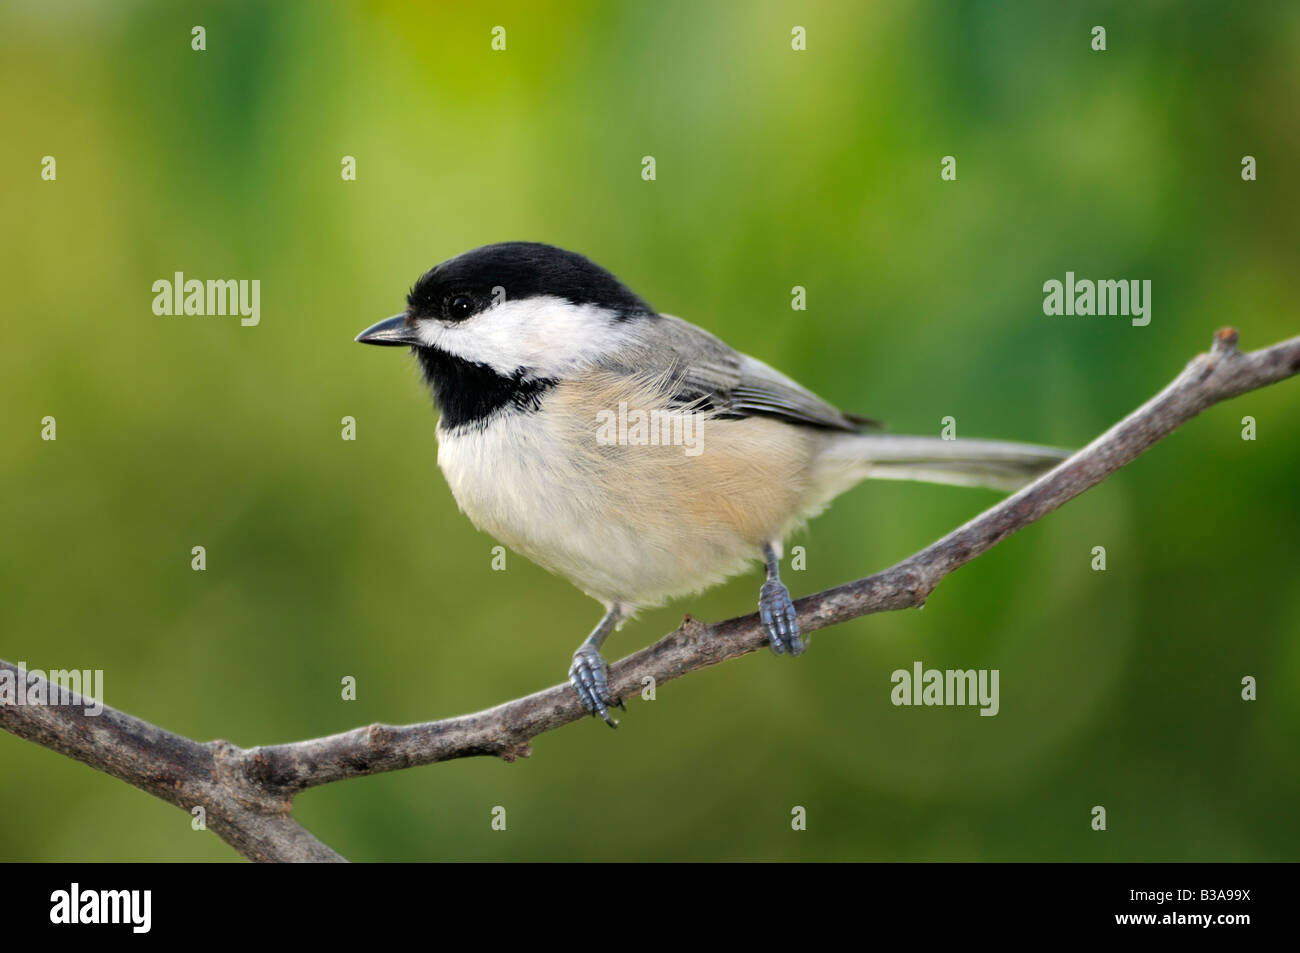 A Black capped Chickadee, Poecile atricapilla, perches on a branch. Oklahoma, USA. - Stock Image